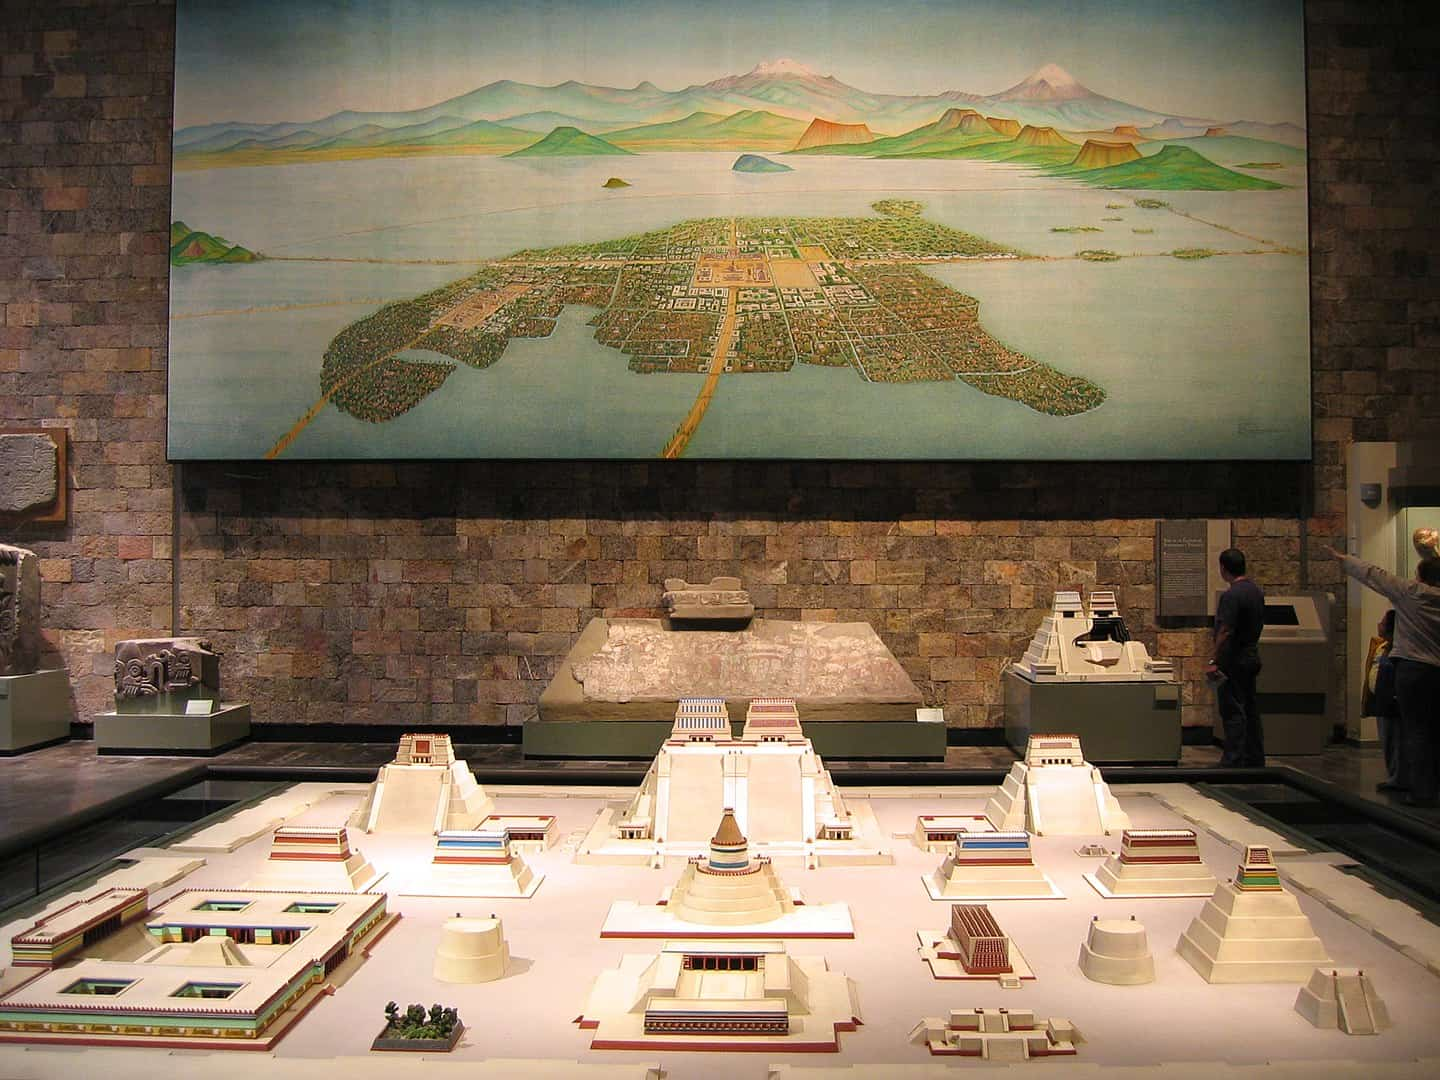 tenochtitlan, aztec facts